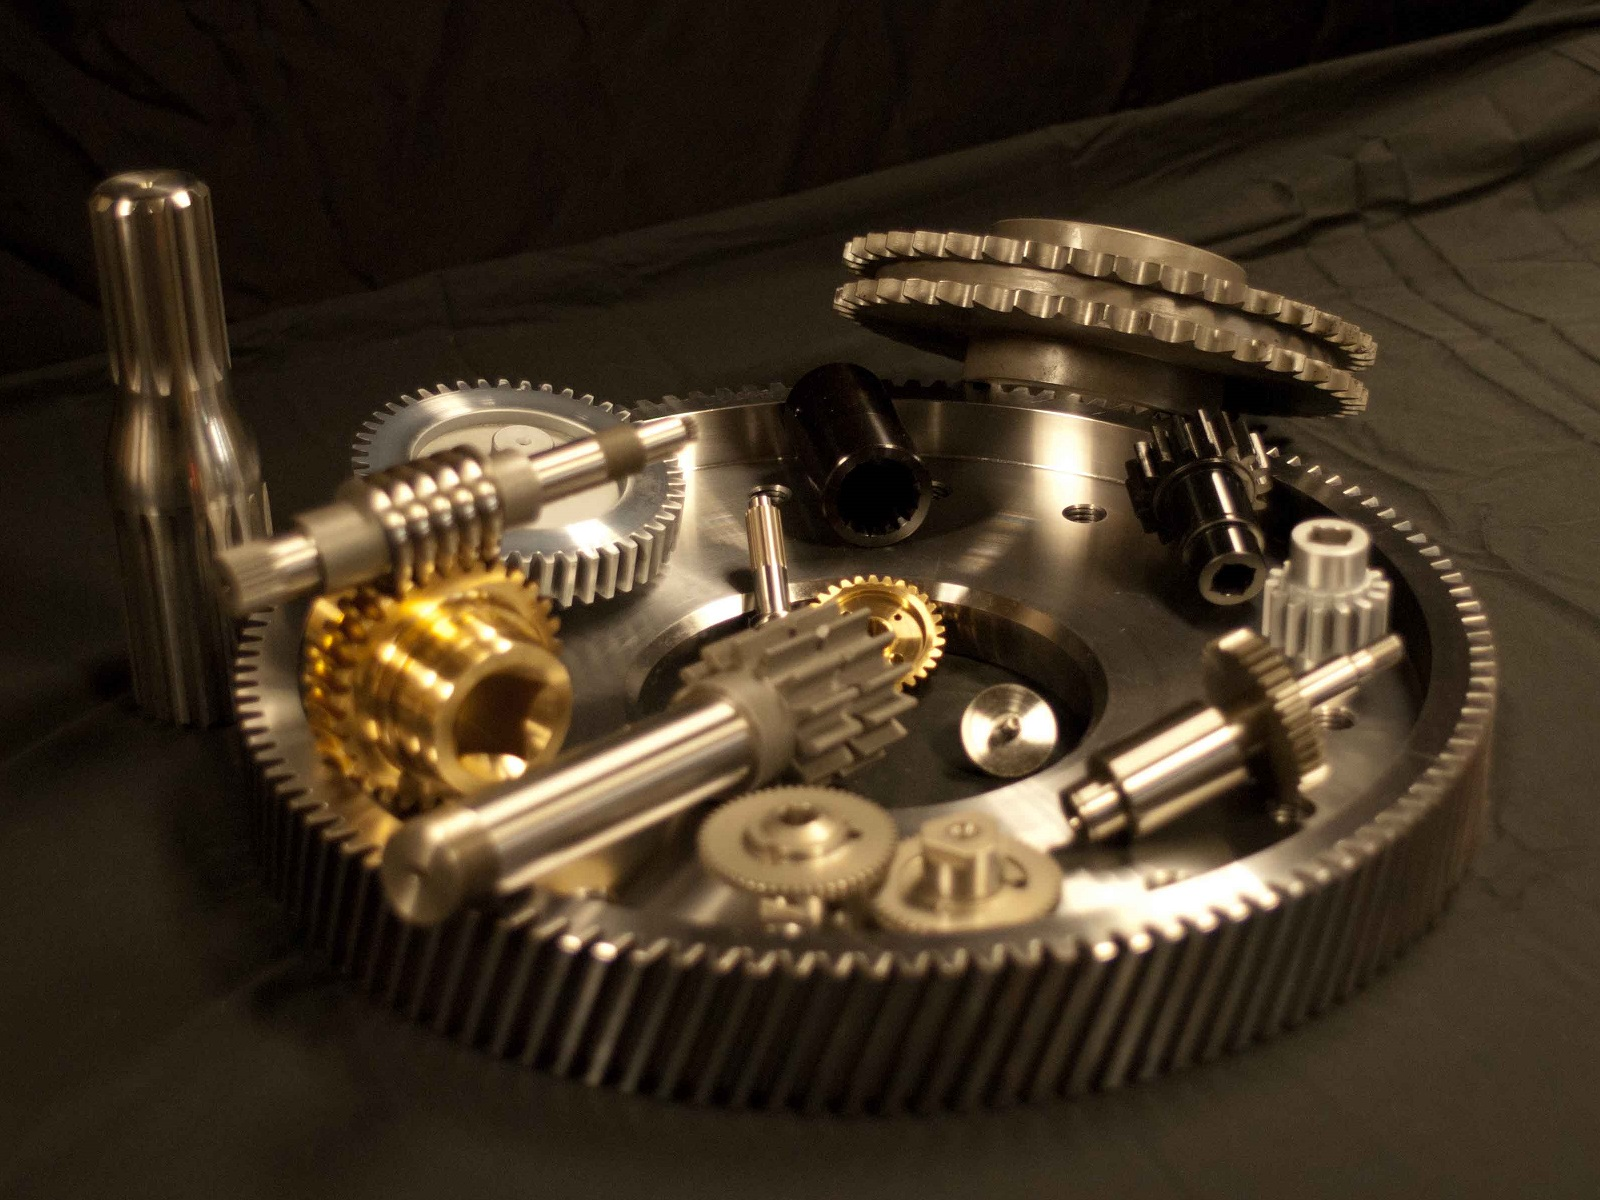 Industrial Gears and Worm Gears